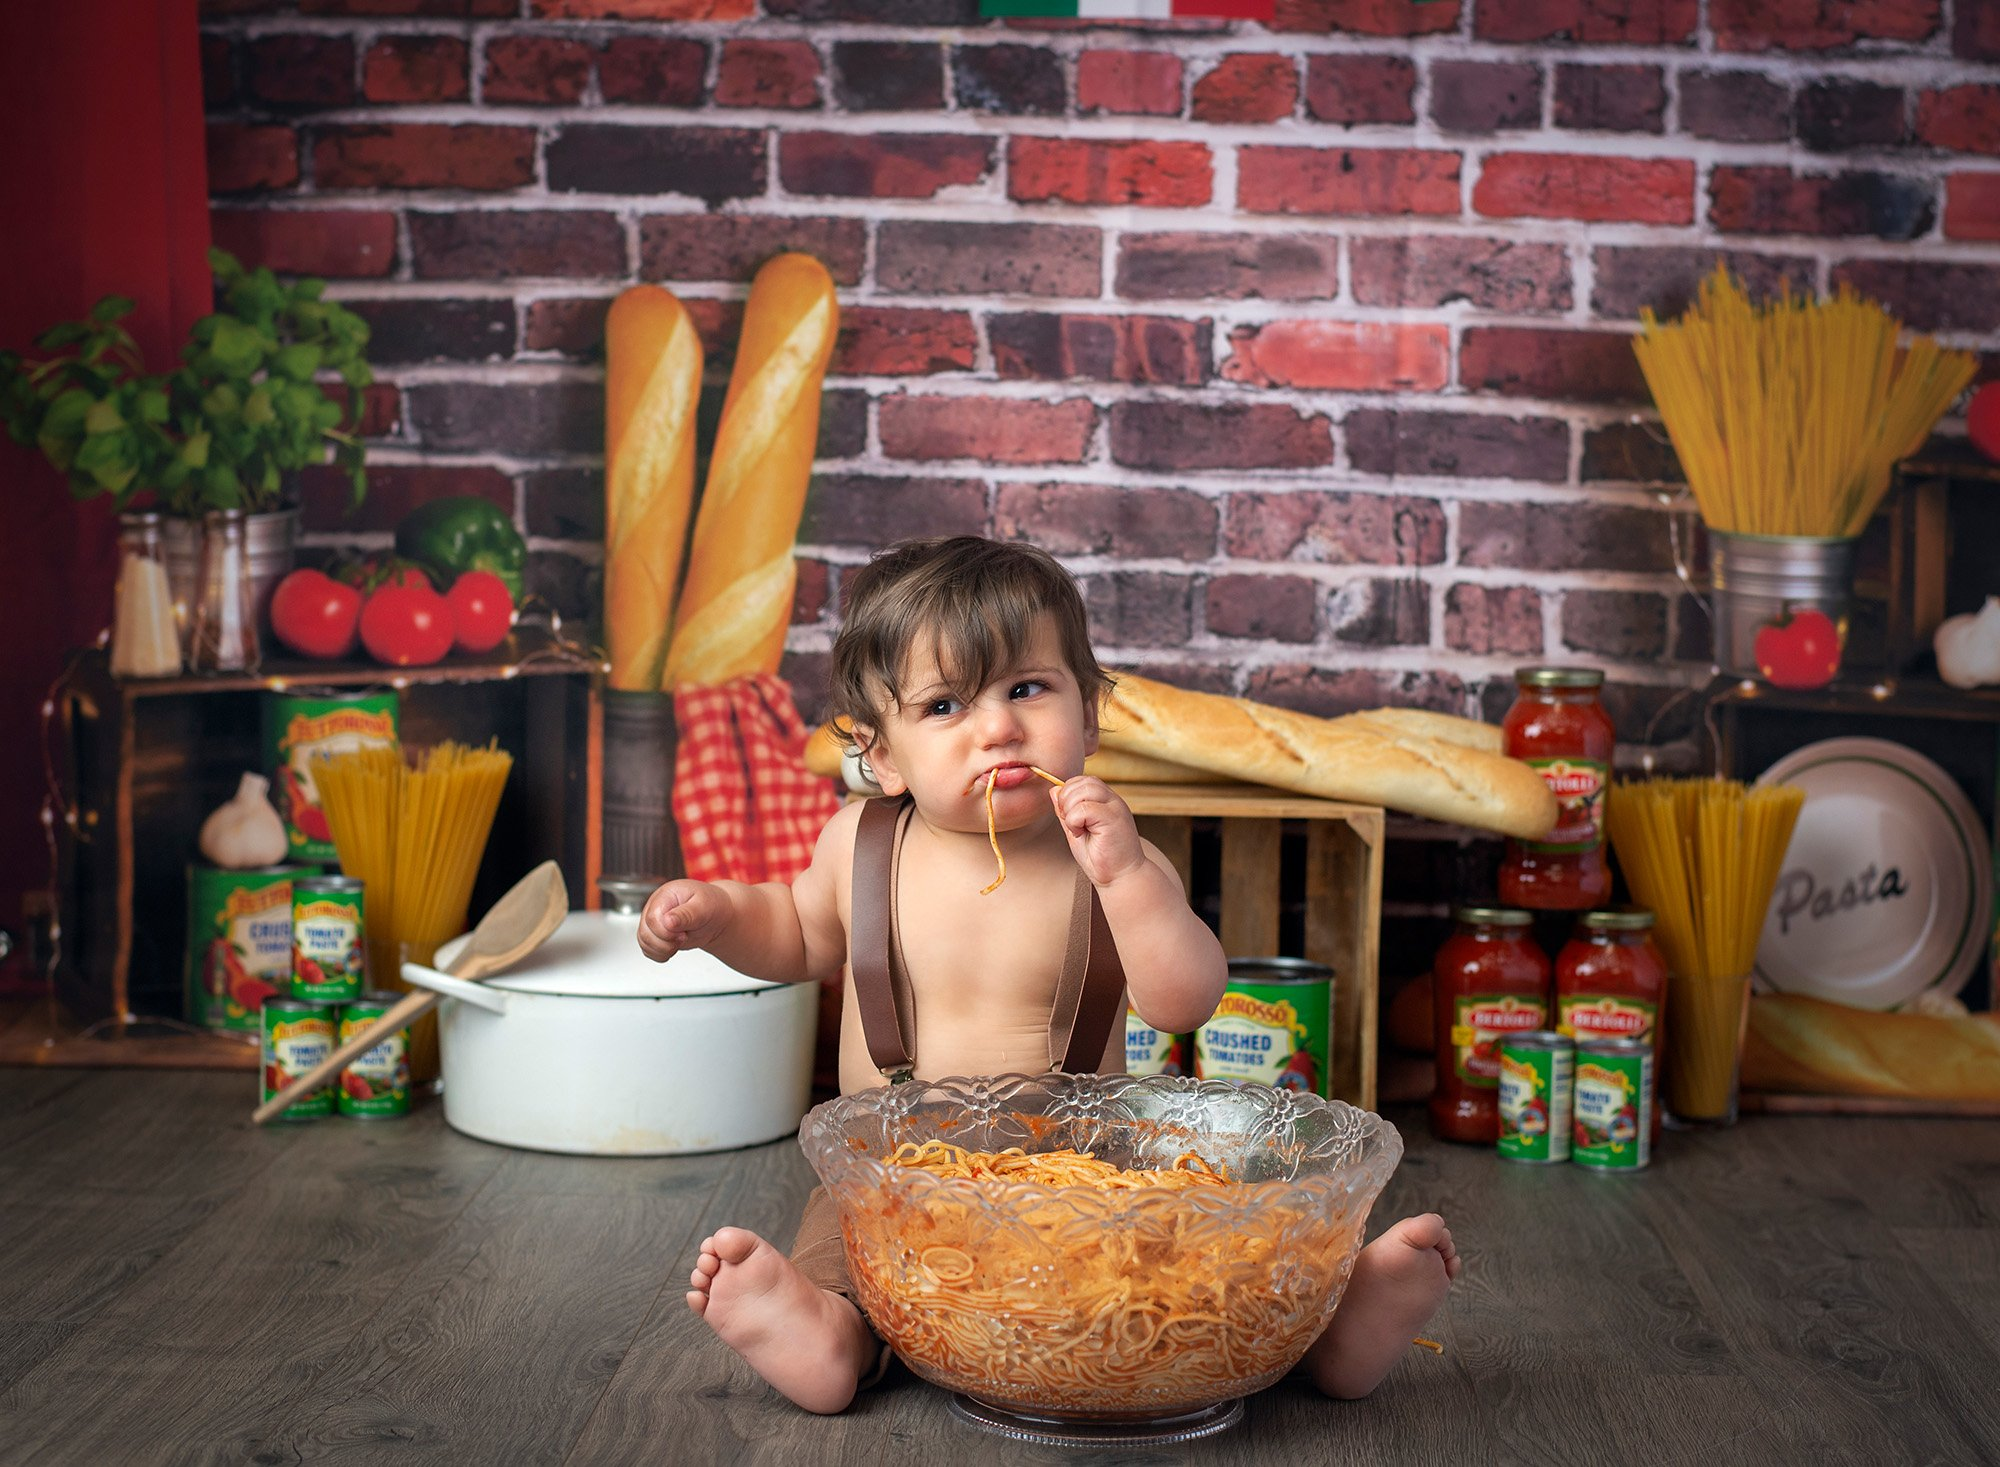 one year old boy eating spaghetti with Italian bread and jars of sauce in background